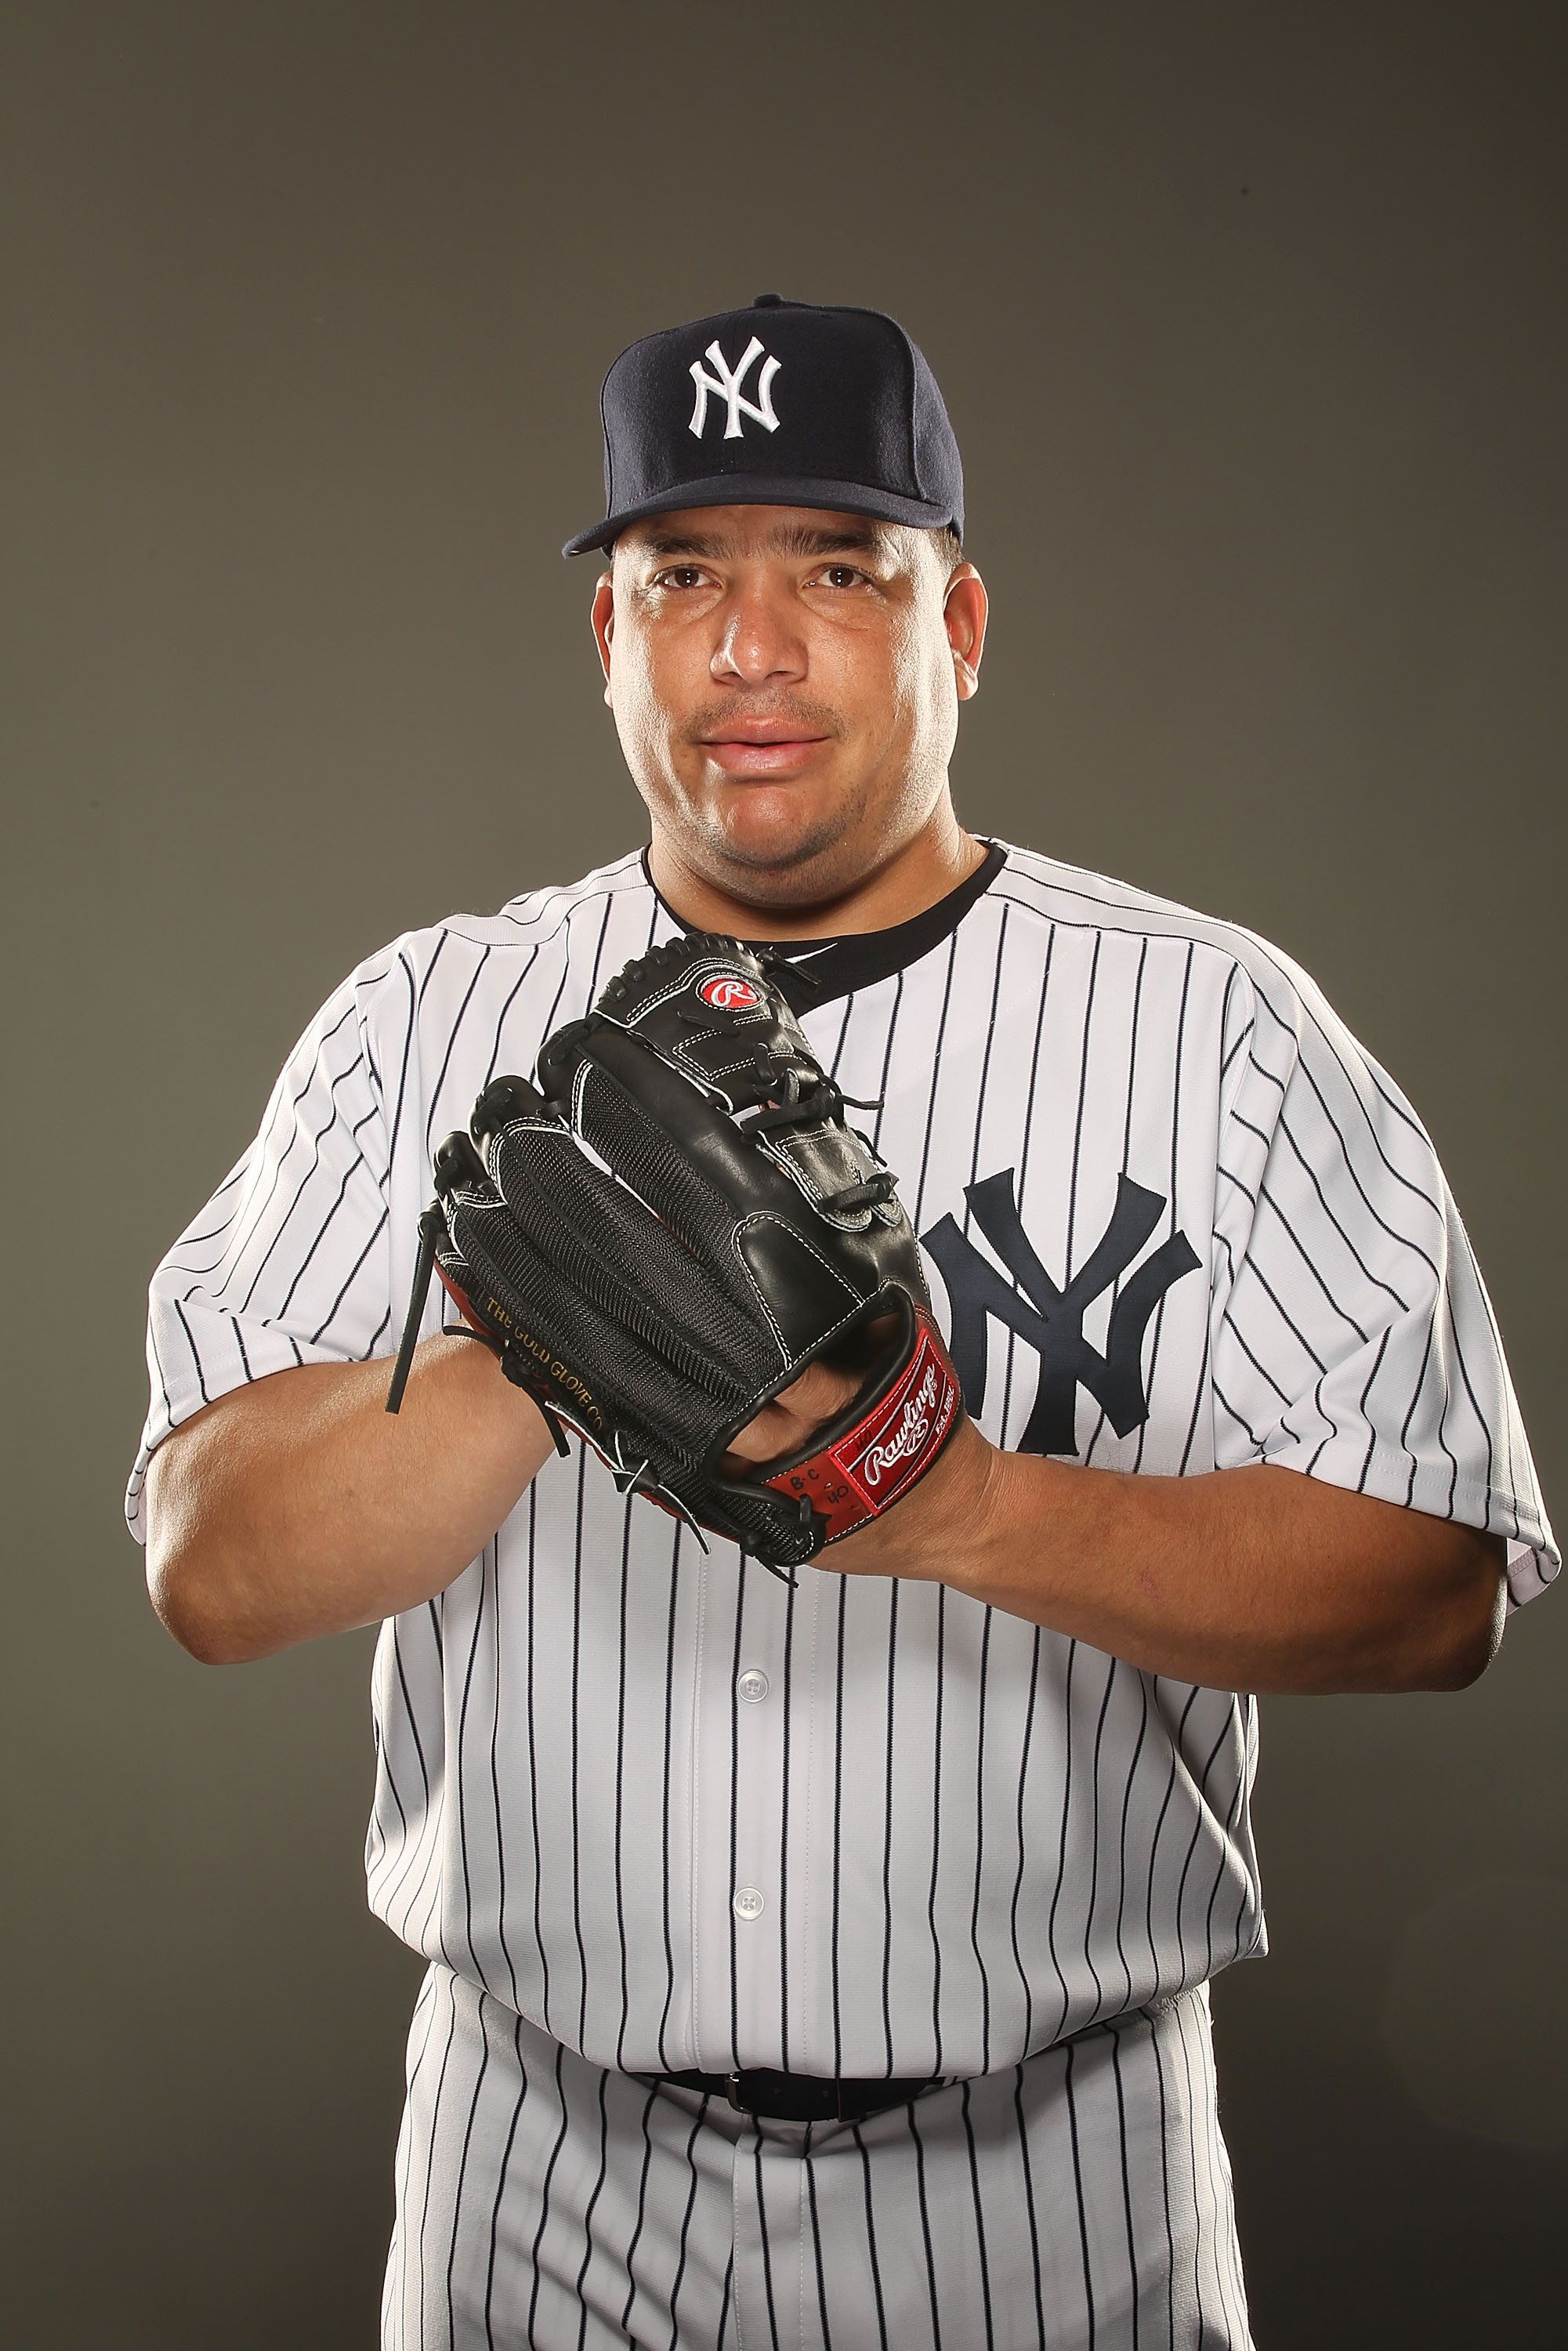 TAMPA, FL - FEBRUARY 23:  Bartolo Colon #40 of the New York Yankees poses for a portrait on Photo Day at George M. Steinbrenner Field on February 23, 2011 in Tampa, Florida.  (Photo by Al Bello/Getty Images)